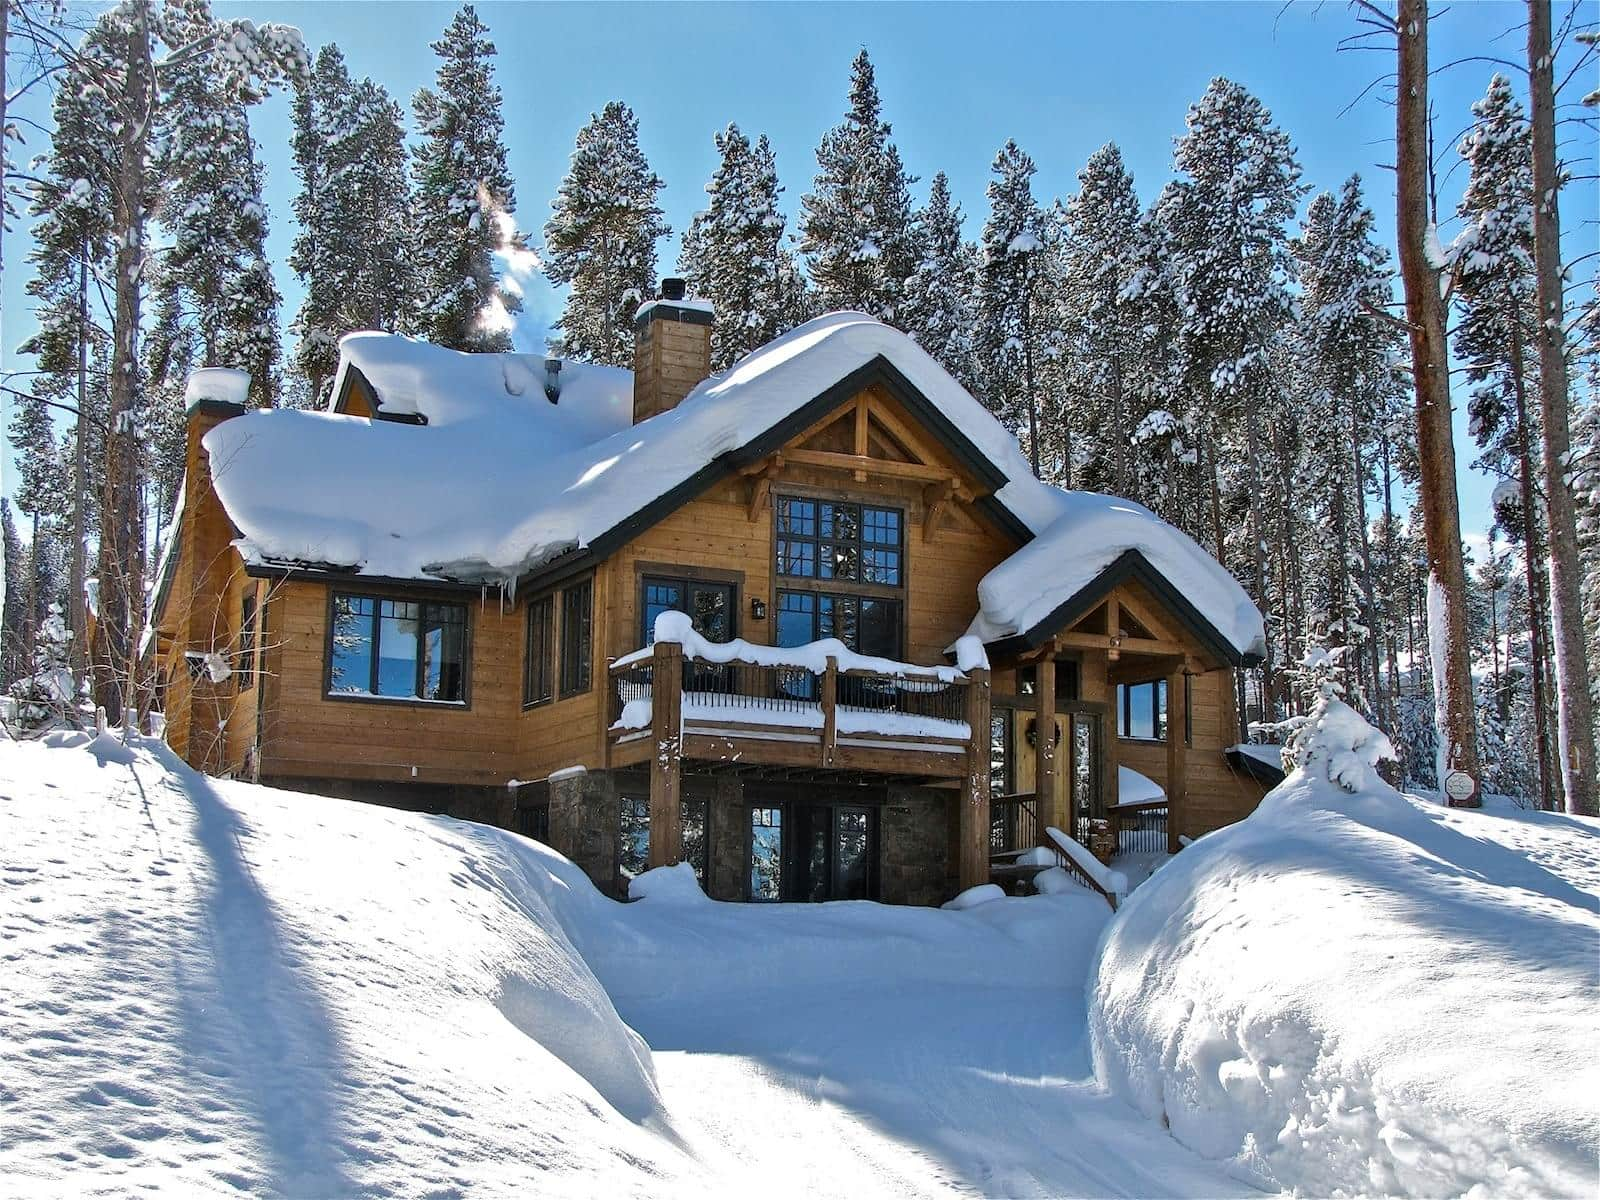 Prime Chalet Chloe 6 Bedroom Vacation Rental In Breckenridge Gmtry Best Dining Table And Chair Ideas Images Gmtryco